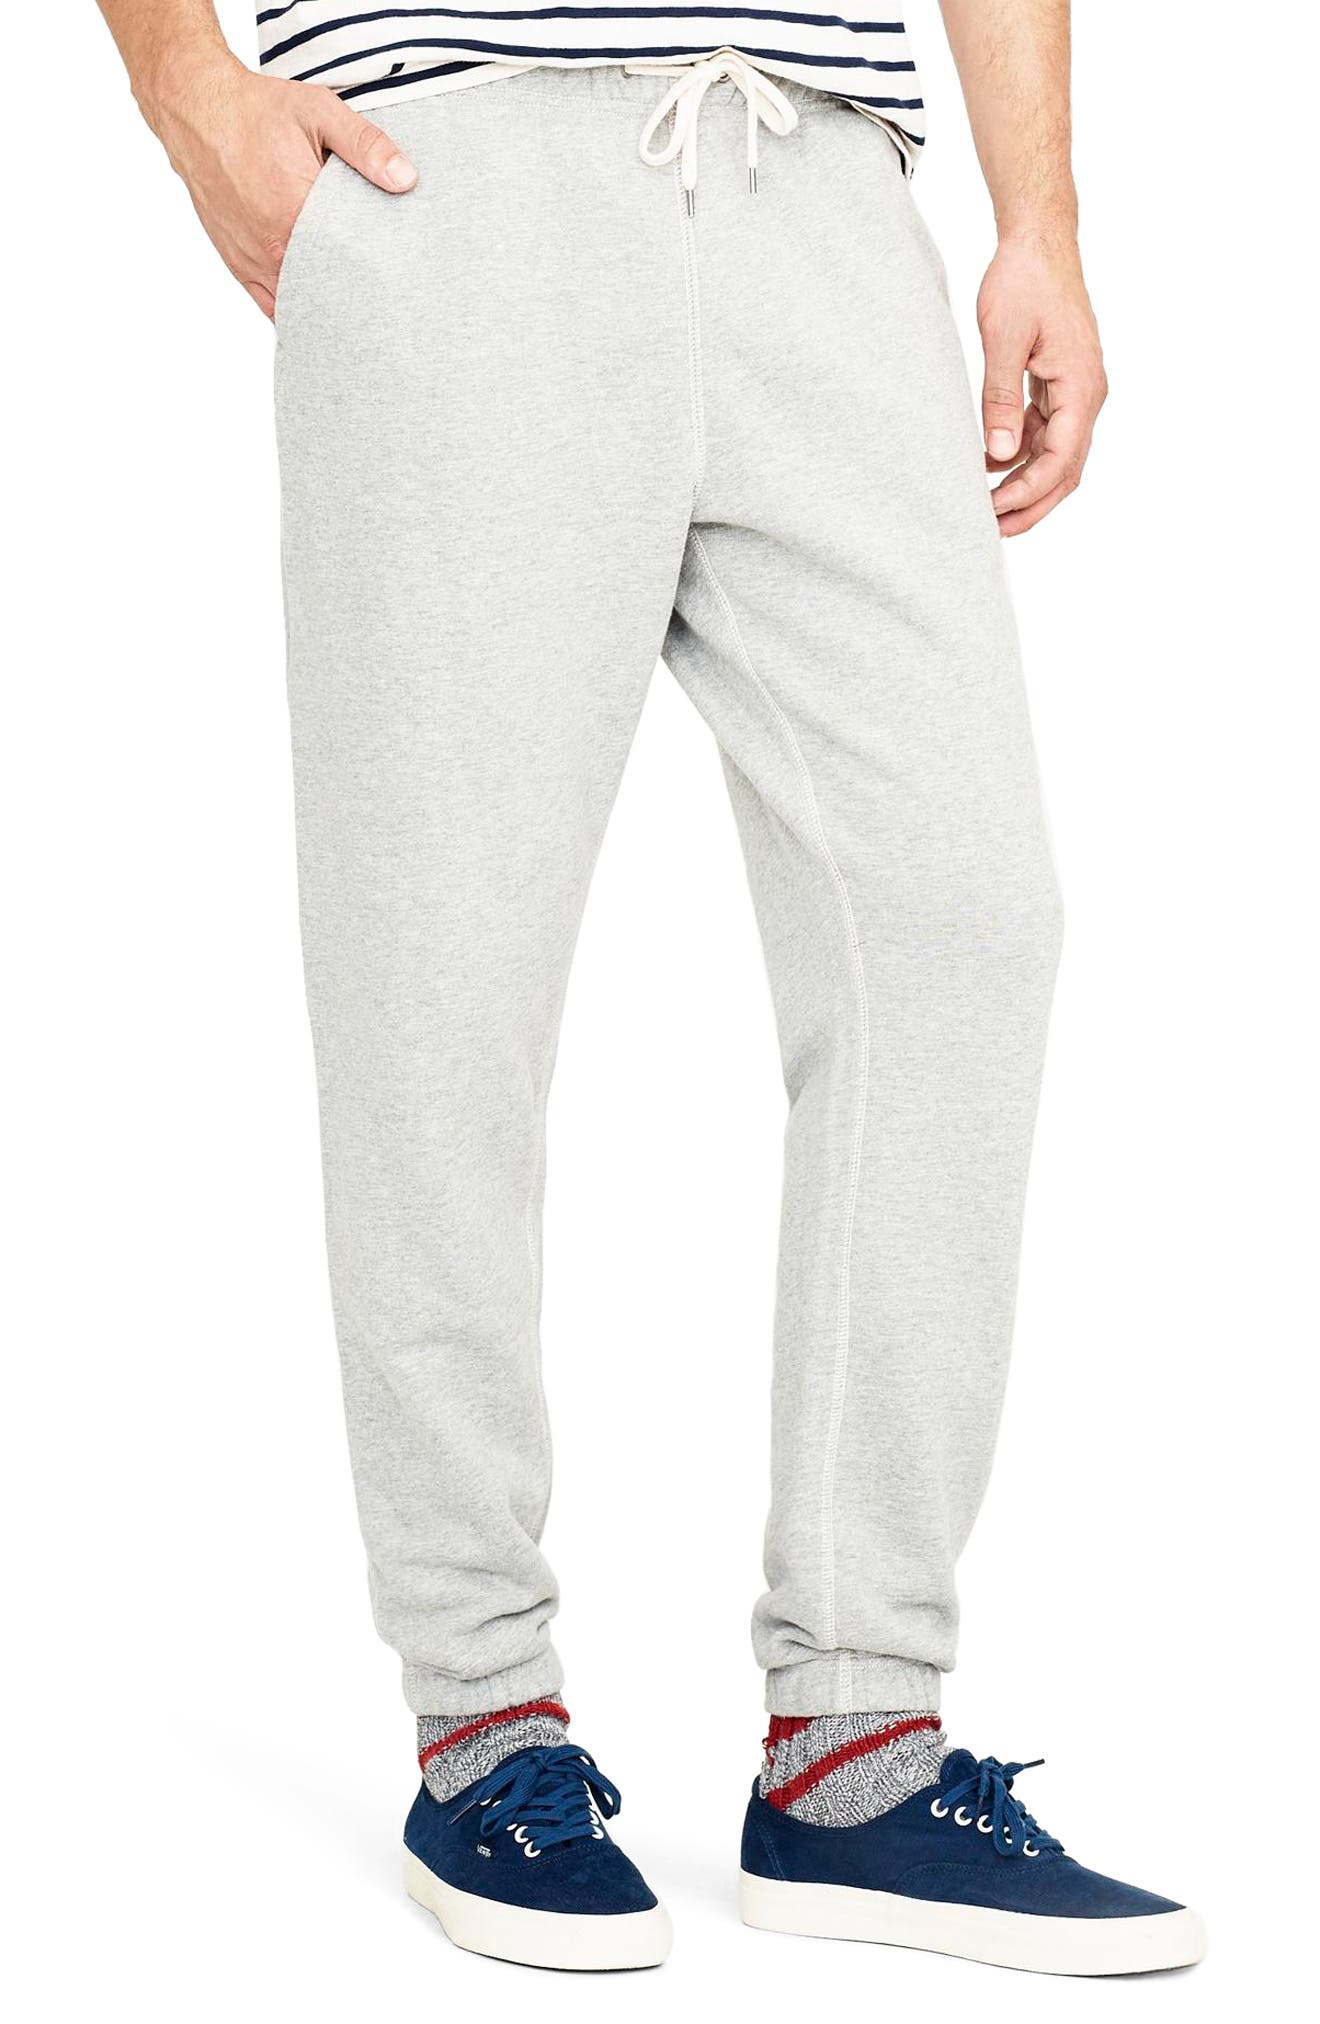 French Terry Sweatpants,                             Alternate thumbnail 3, color,                             HEATHER GREY